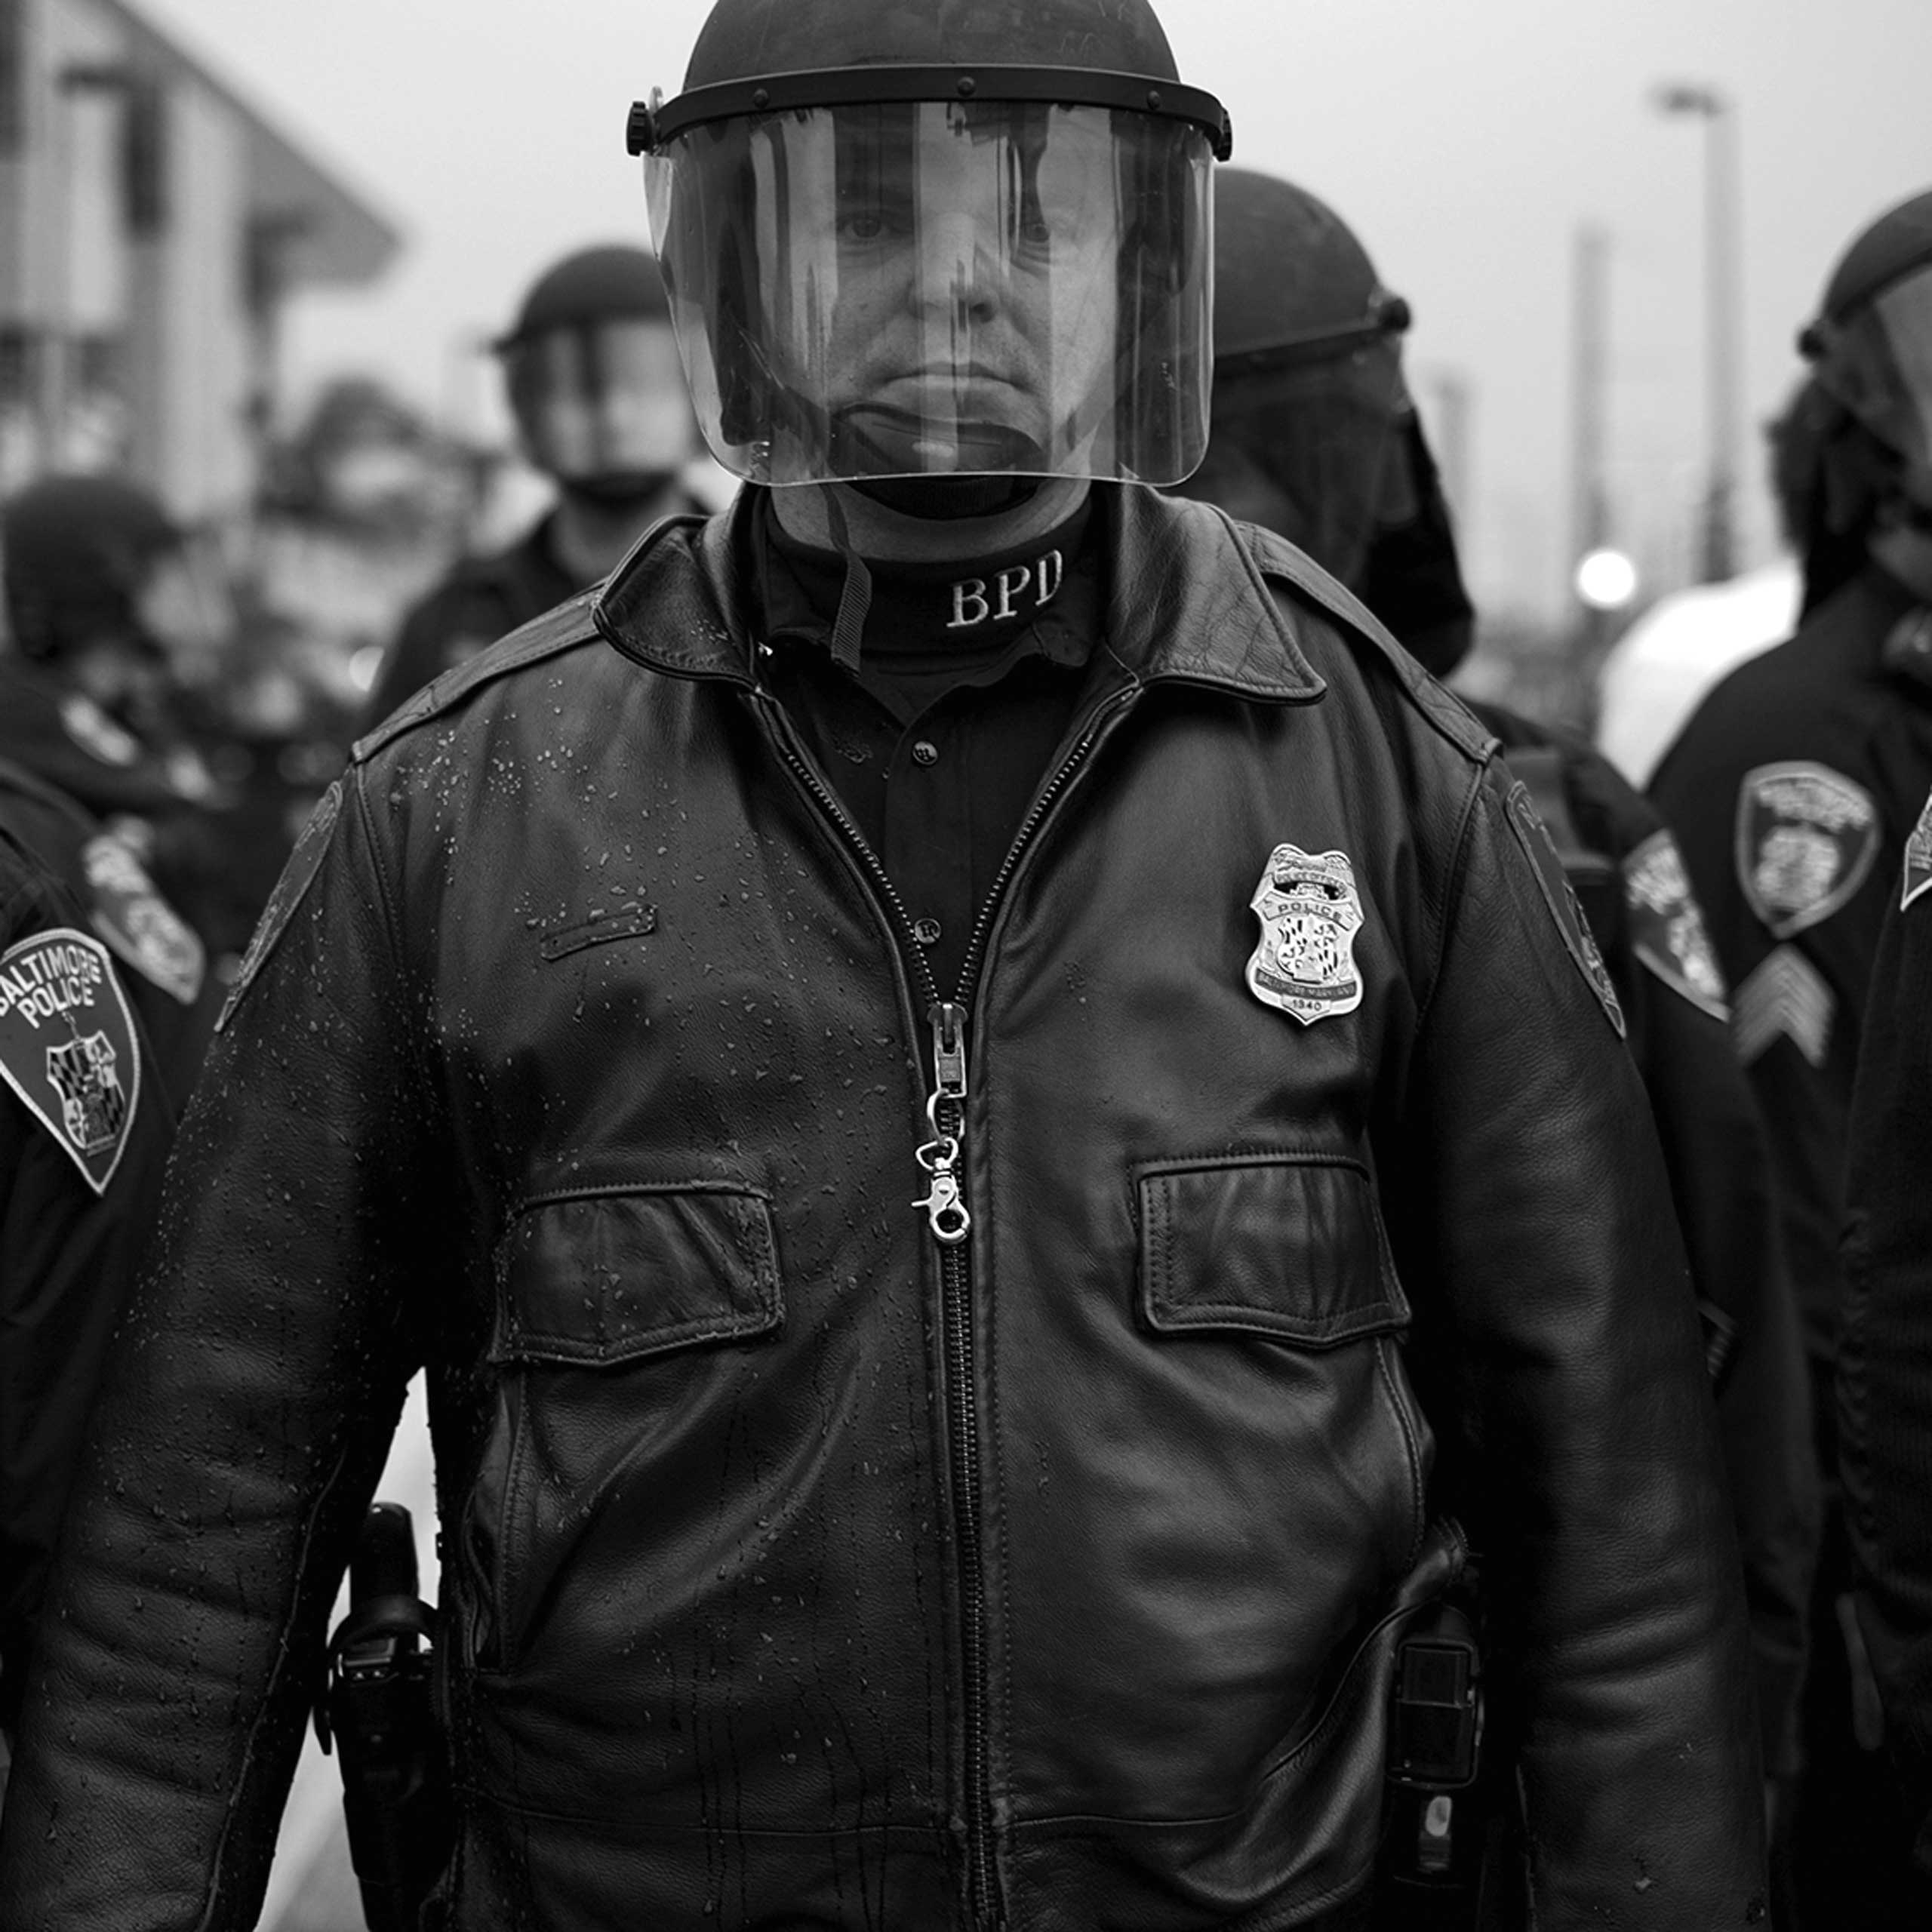 A police officer stands guard during protests in Baltimore on April 26, 2015.